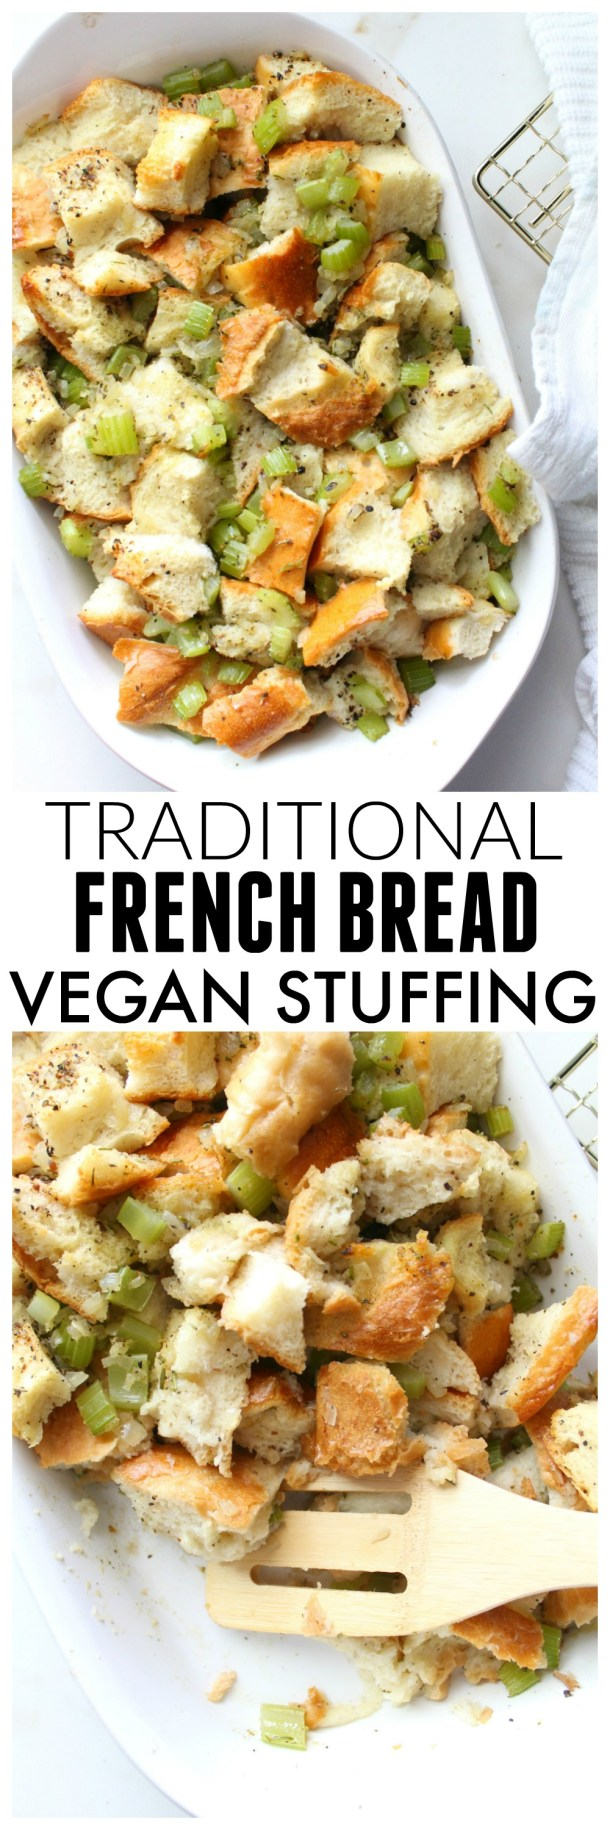 This Traditional French Bread Vegan Stuffing is easy to make and has all of the holiday flavors you've grown up loving but vegan-ized | ThisSavoryVegan.com #vegan #thanksgiving #veganthanksgiving